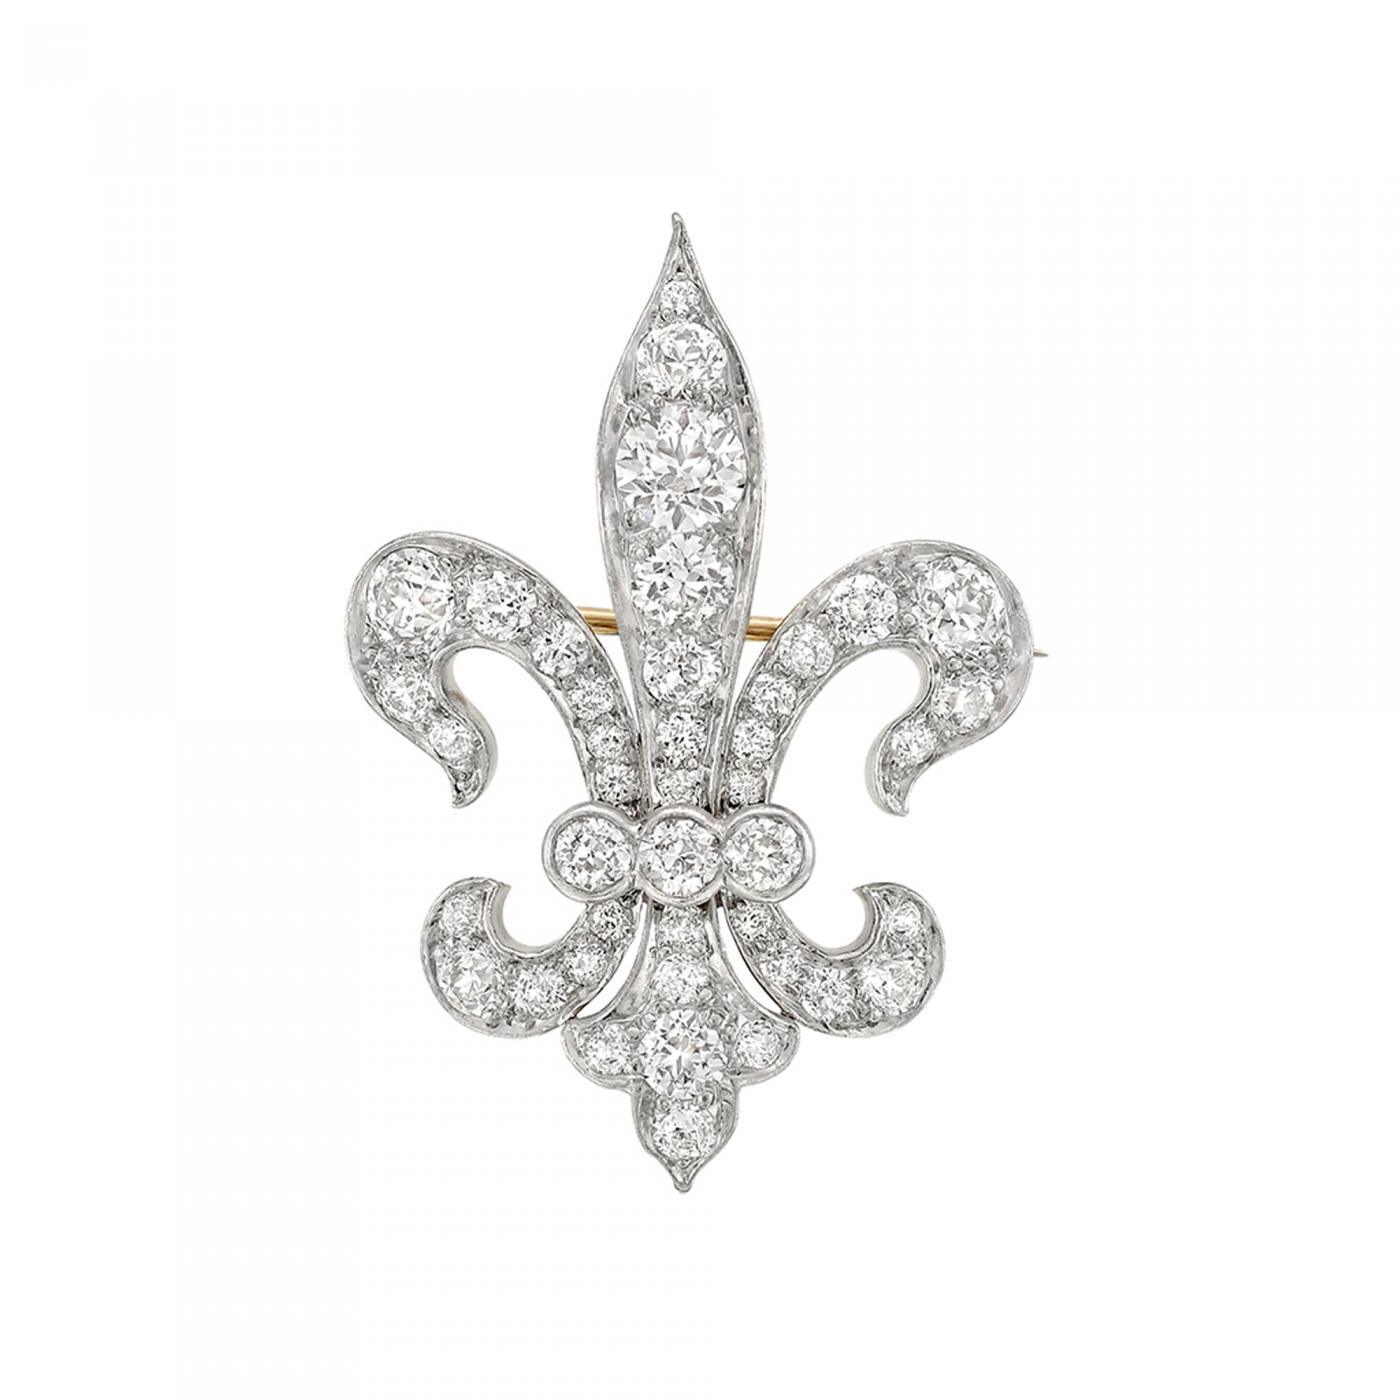 Tiffany and co tiffany co late 19th century diamond fleur de listings jewelry brooches and pins brooches pins aloadofball Image collections